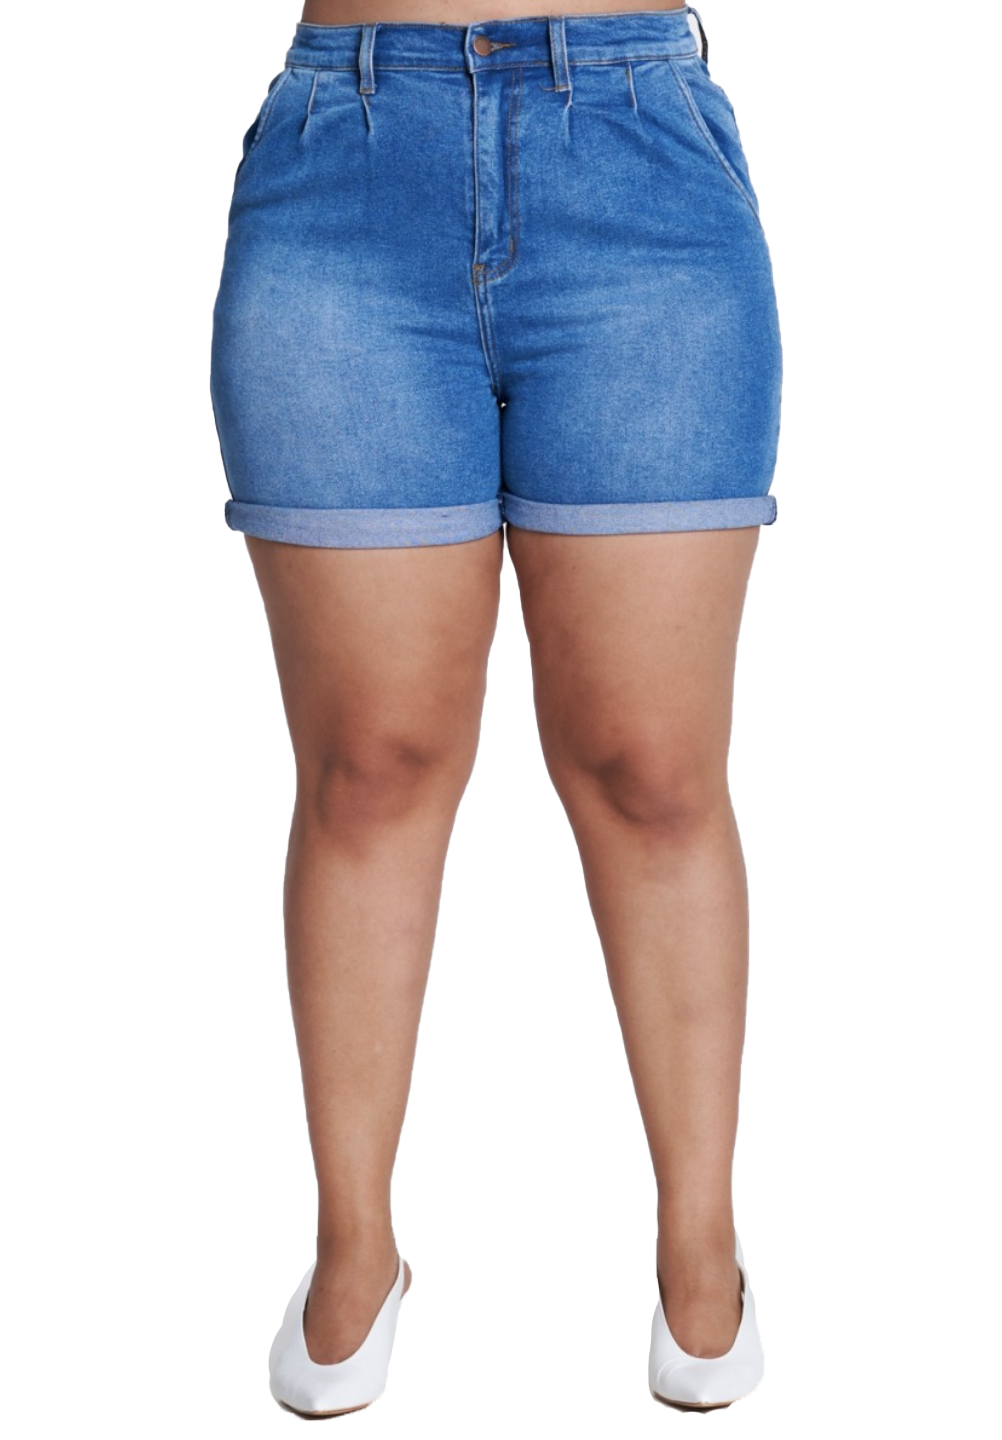 {{ES1652}} Curvy Cuffed Shorts with side pockets (Short Cuffs can roll down) - The House of Stylez